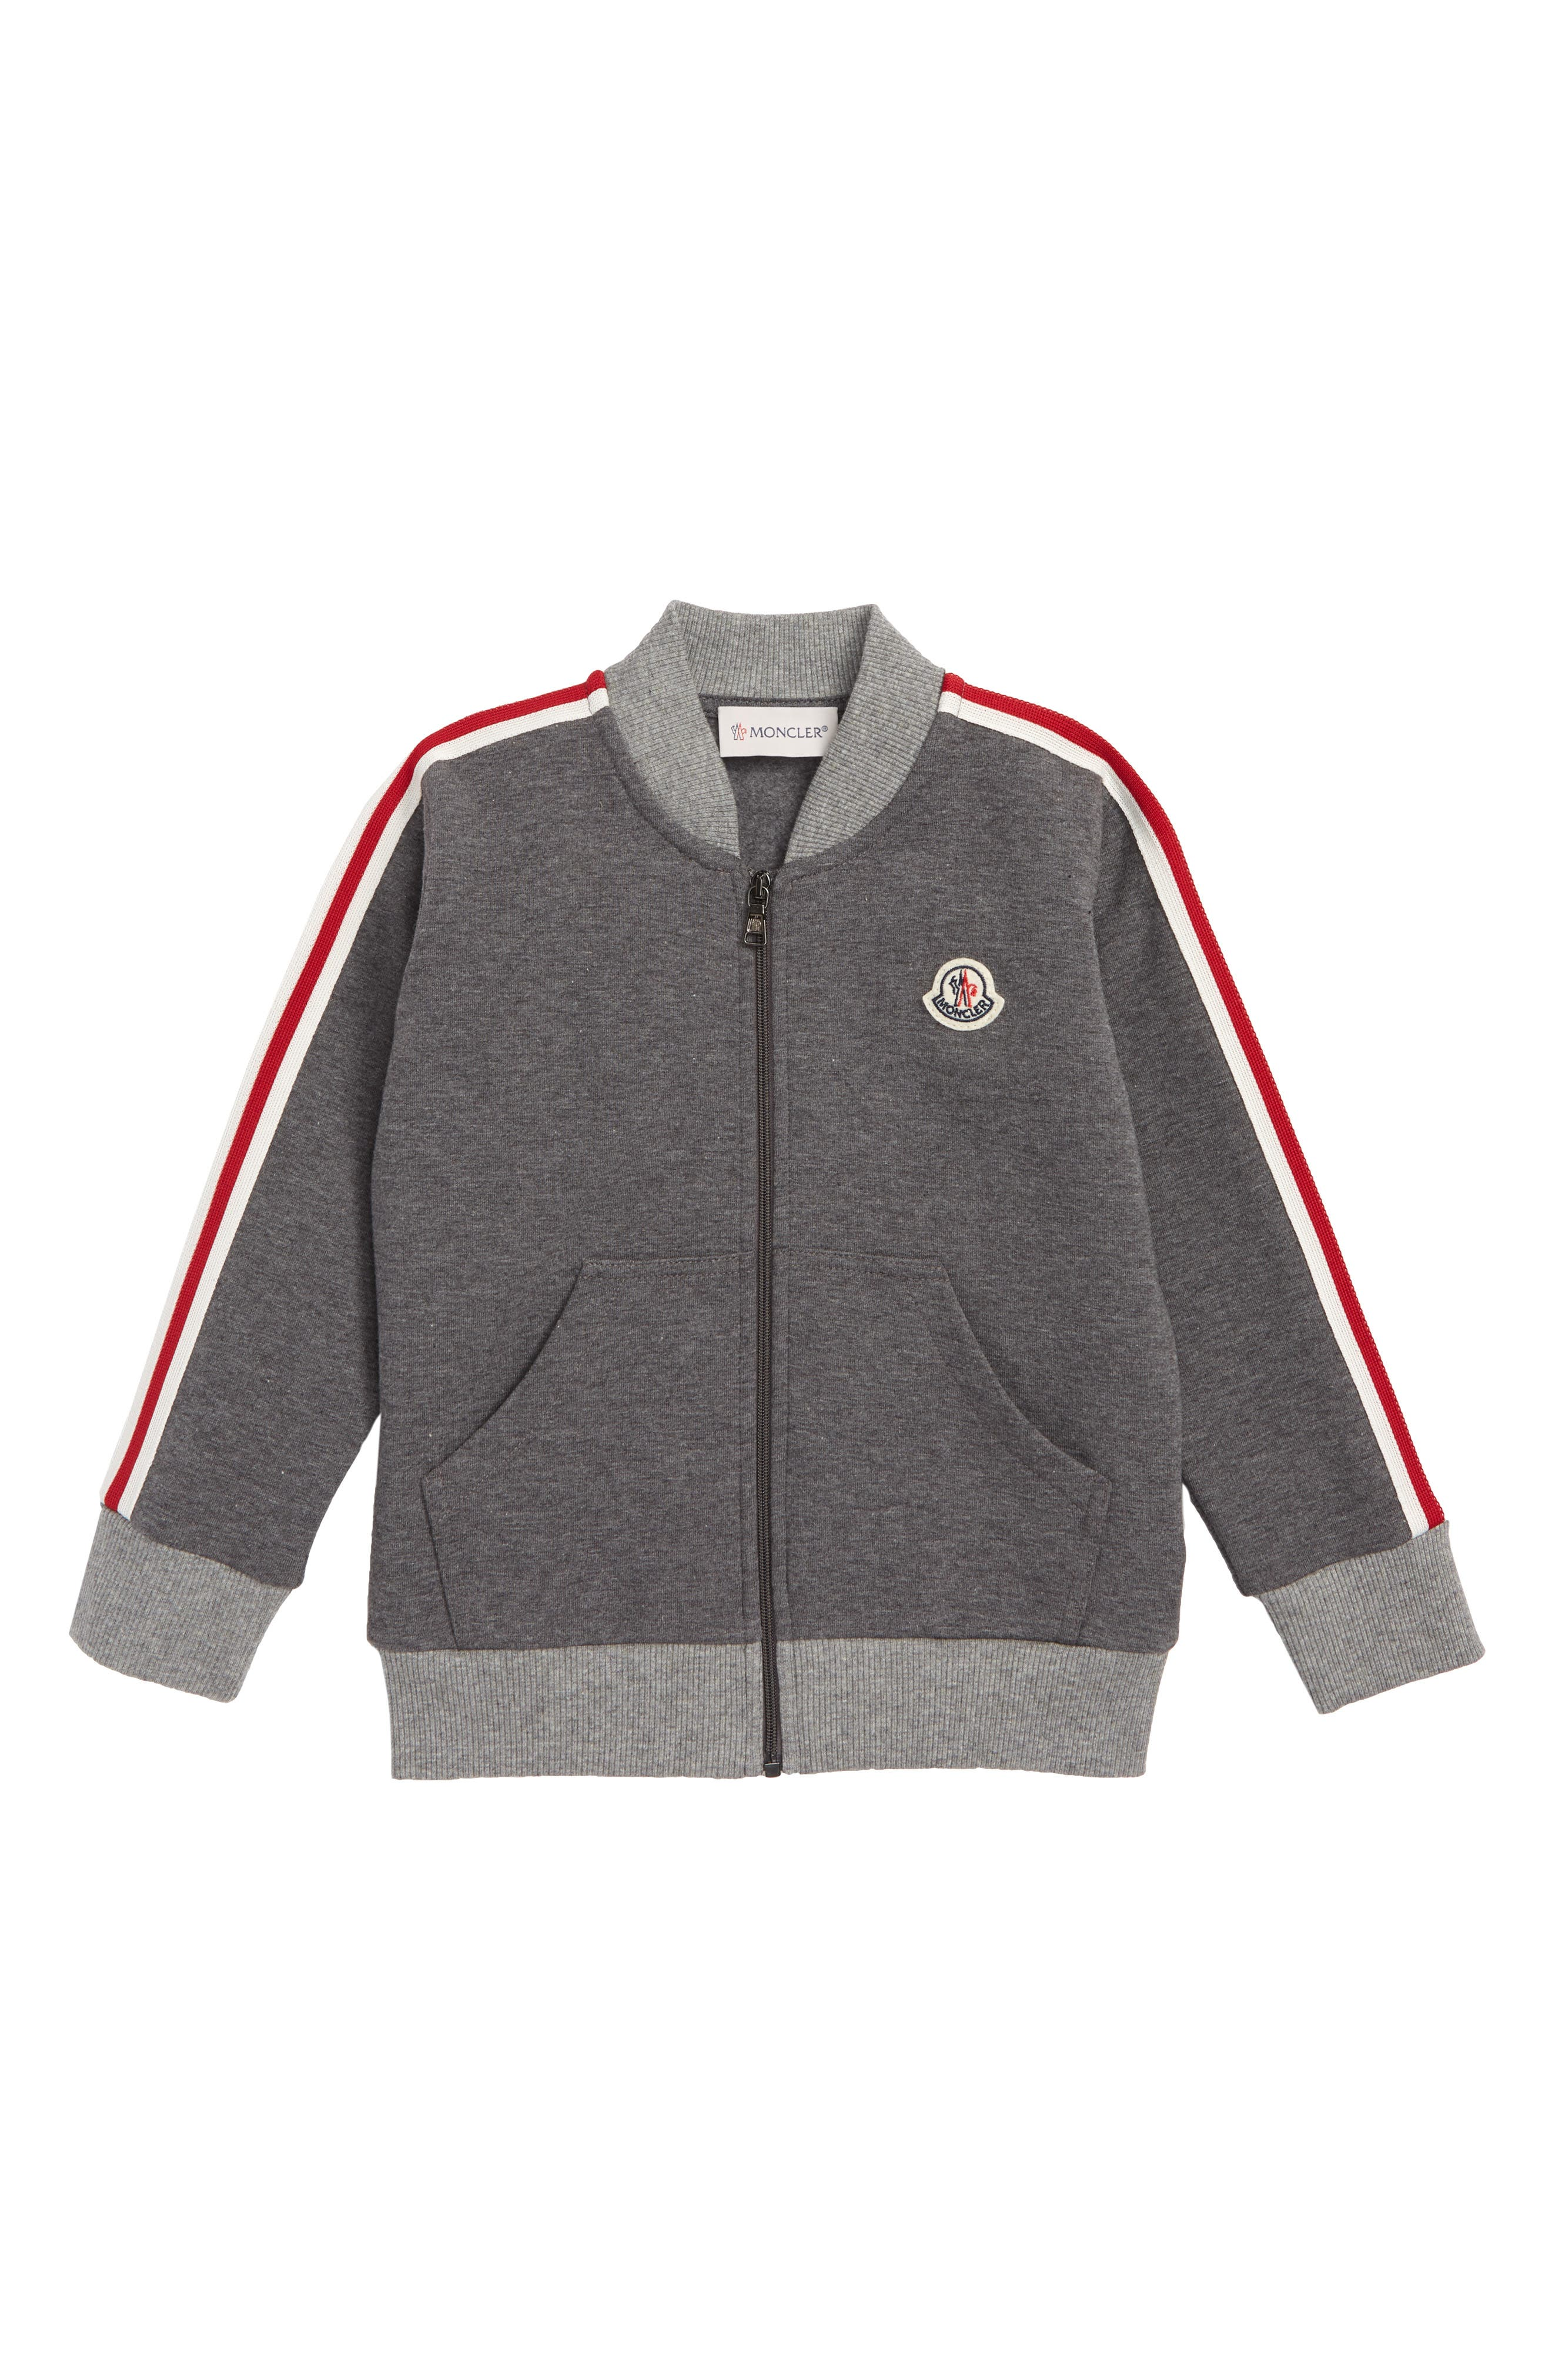 Toddler Boys Moncler Maglia Zip Sweater Size 912M  Grey